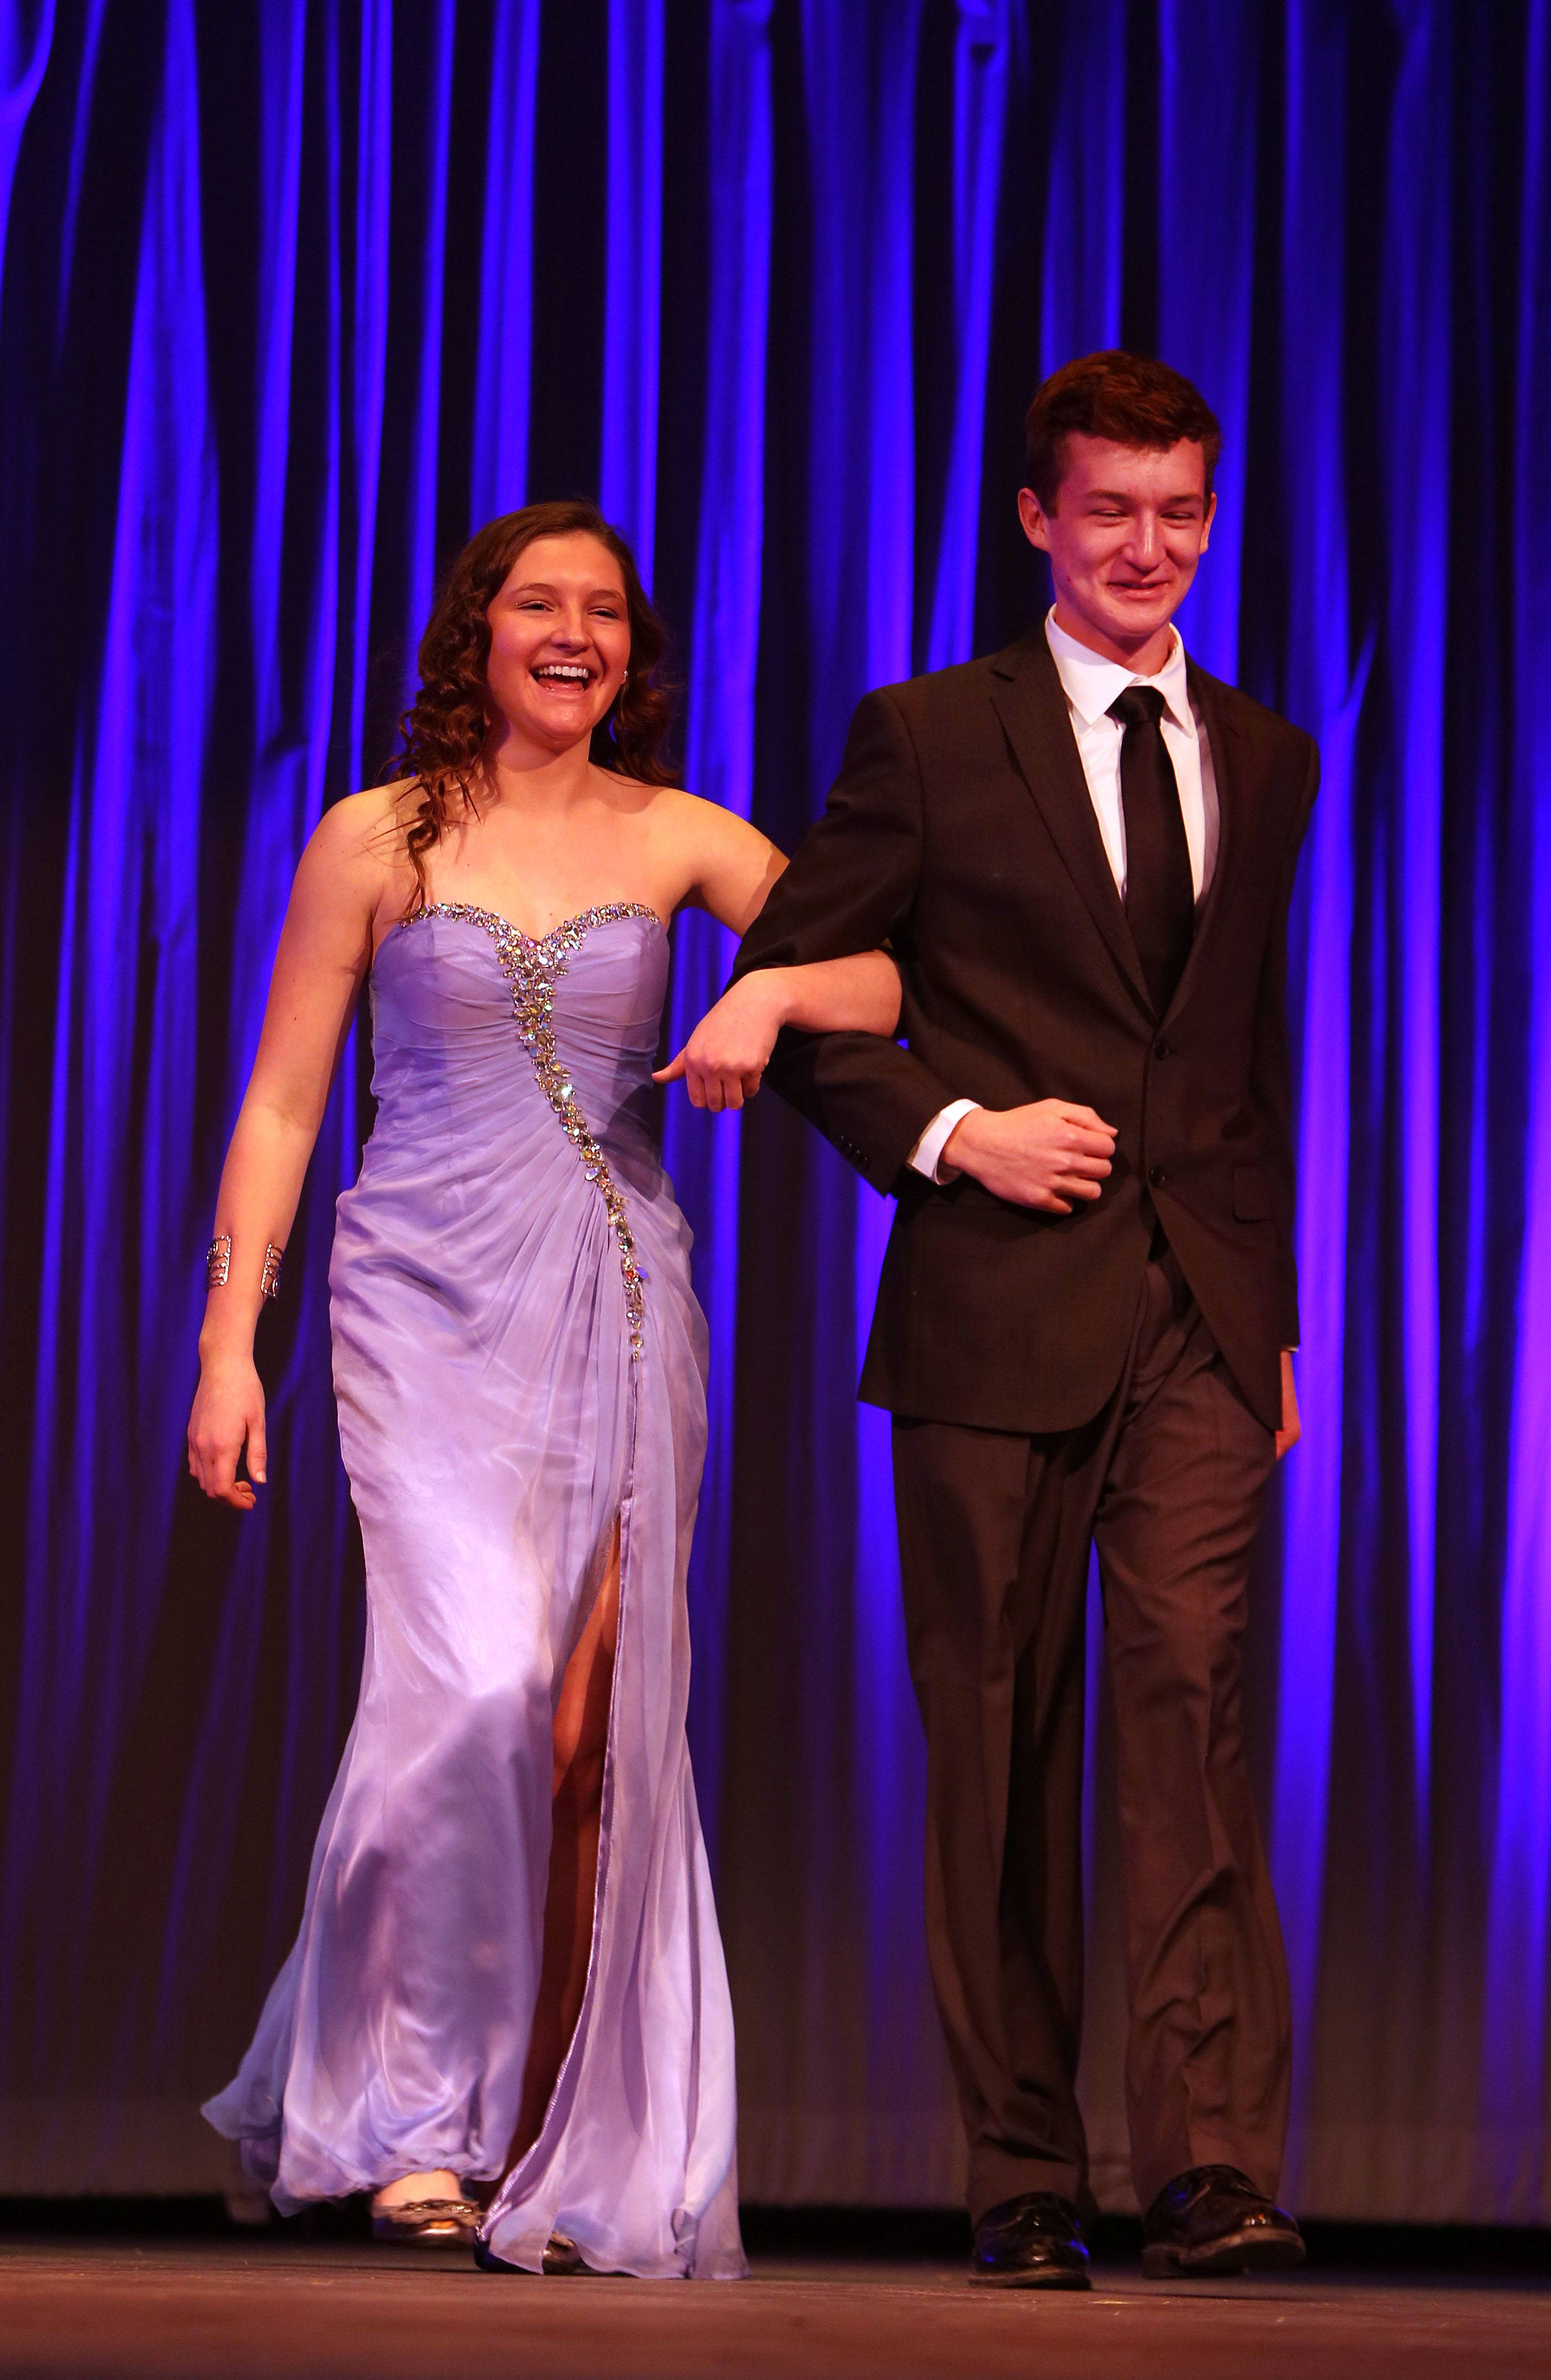 Rosary High School senior Monica Powers, left, is escorted by her brother, Marmion Academy sophomore Jimmy Powers, during Sunday's 4th annual Rosary National Honor Society dress sale and fashion show in Aurora. The event raises money for scholarships given to incoming freshmen.